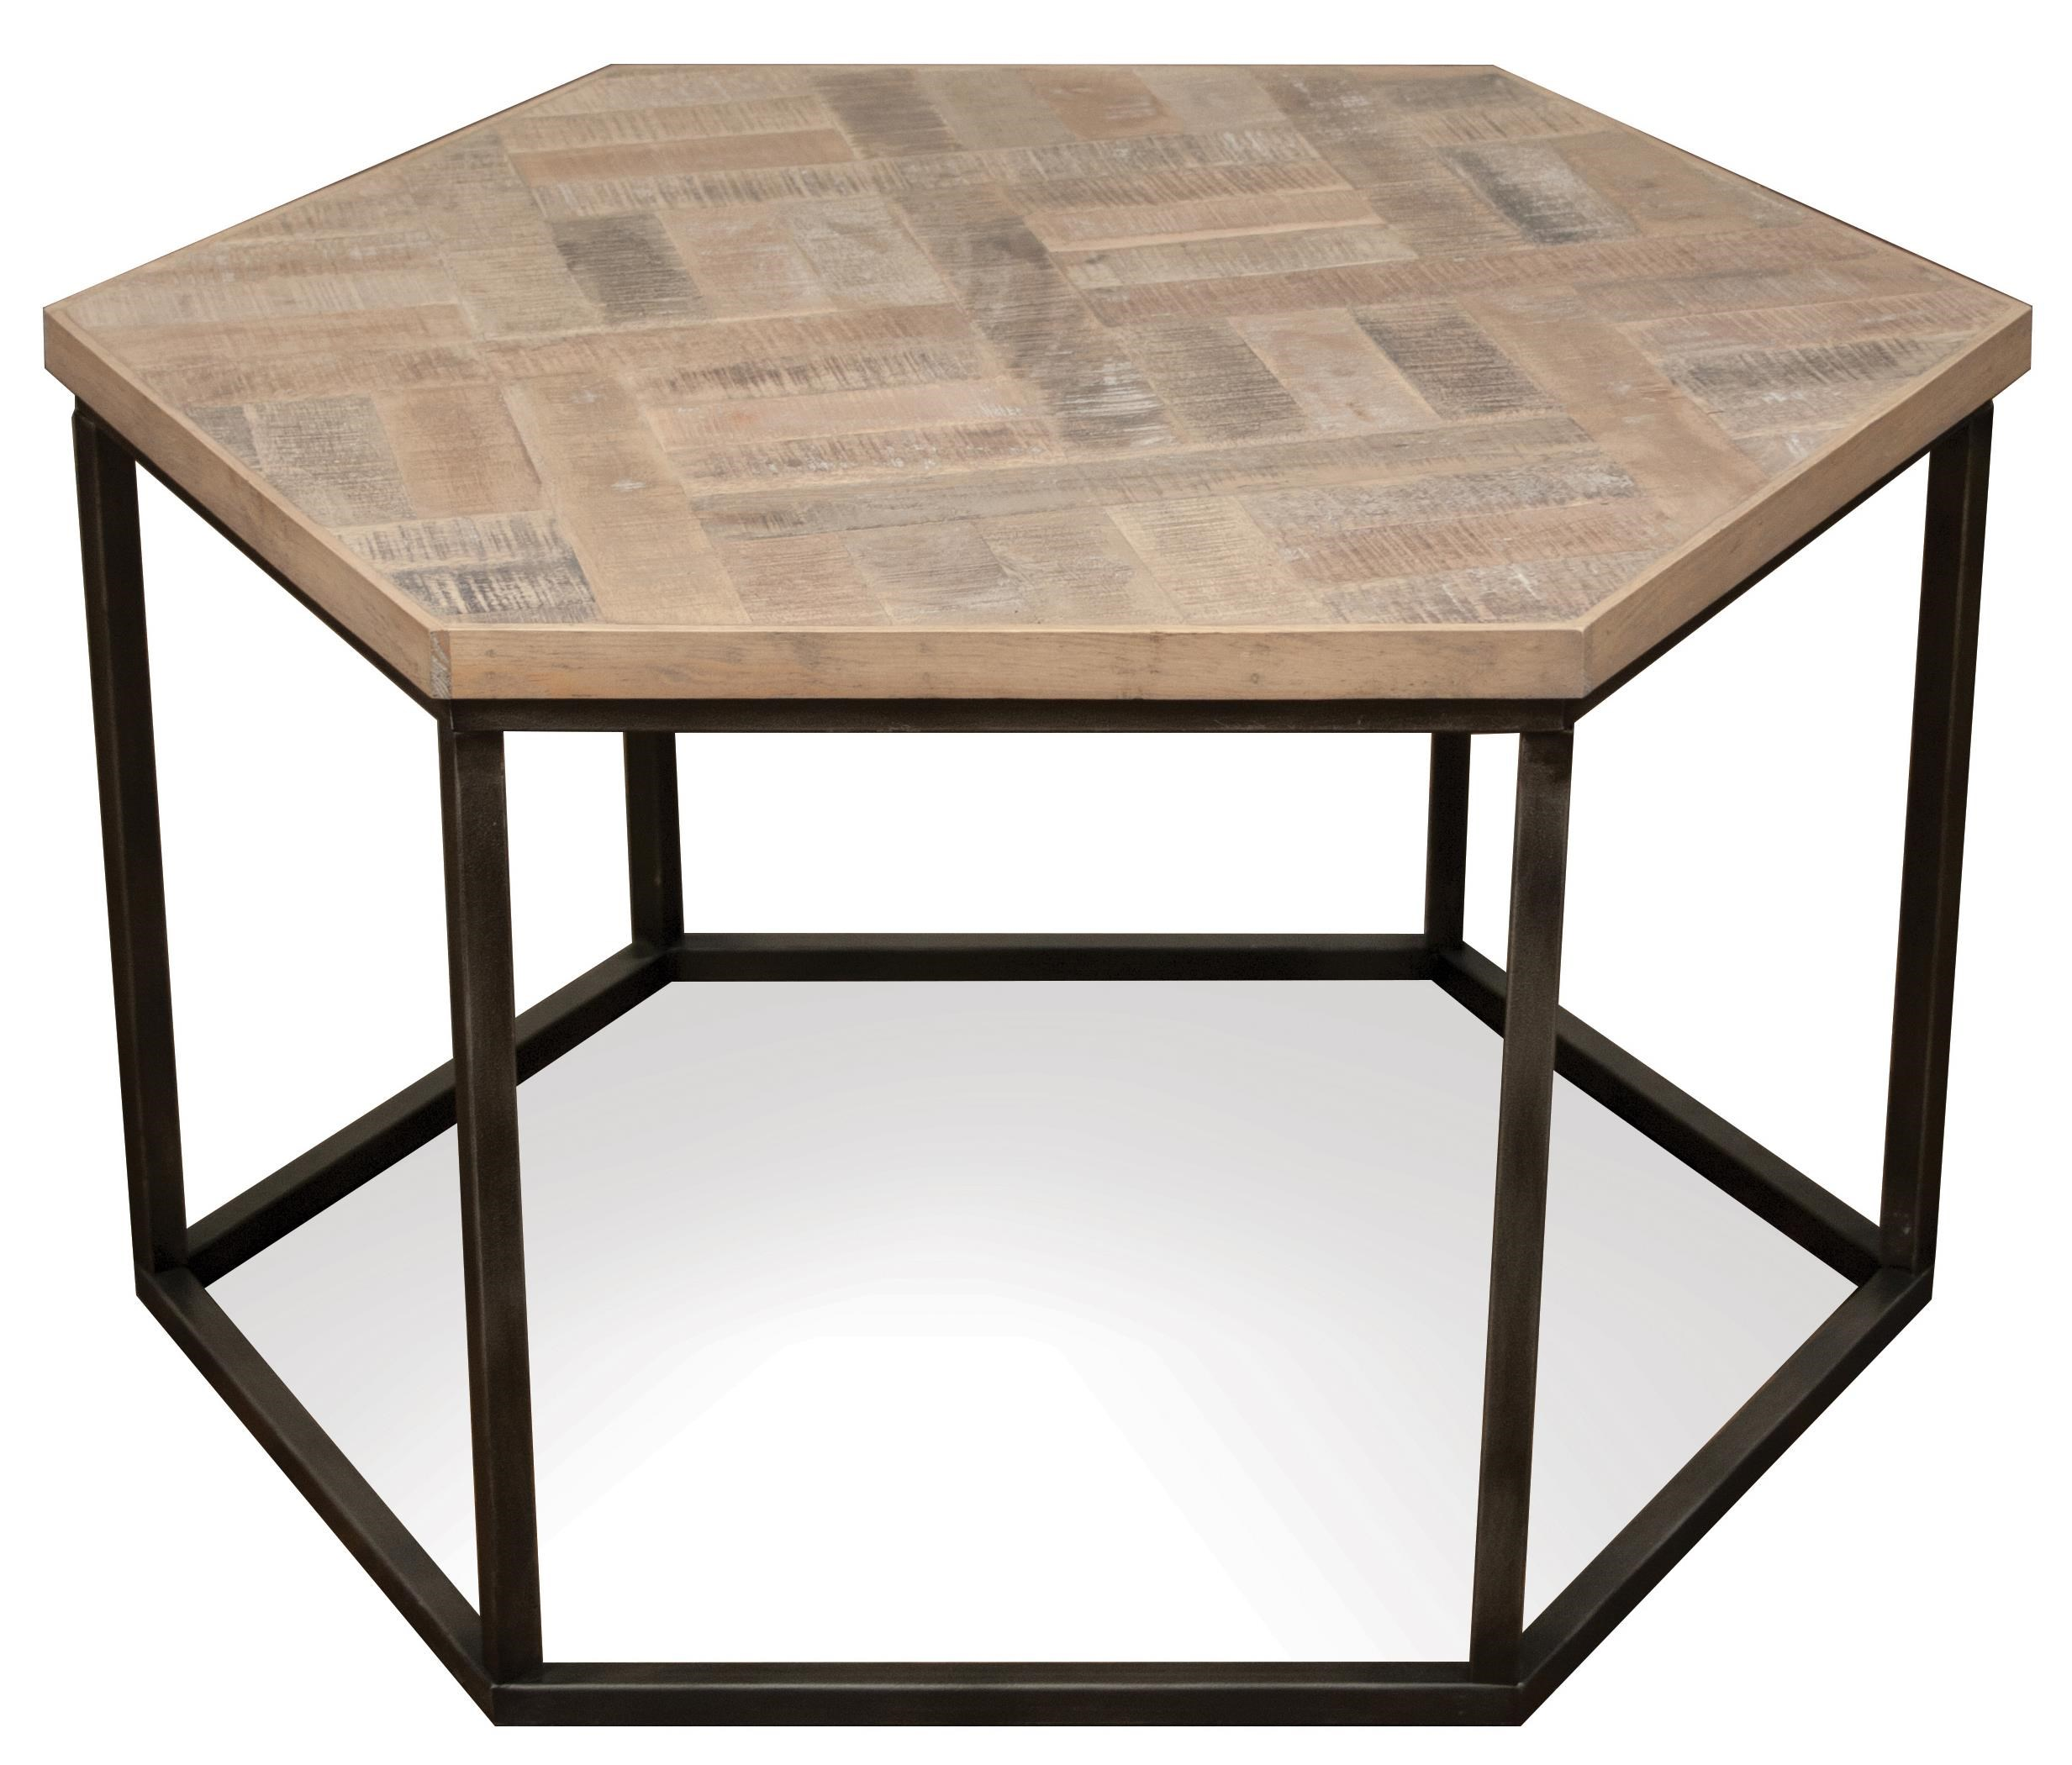 Riverside Furniture Thornhill Hexagon Coffee Table W/ Metal Base